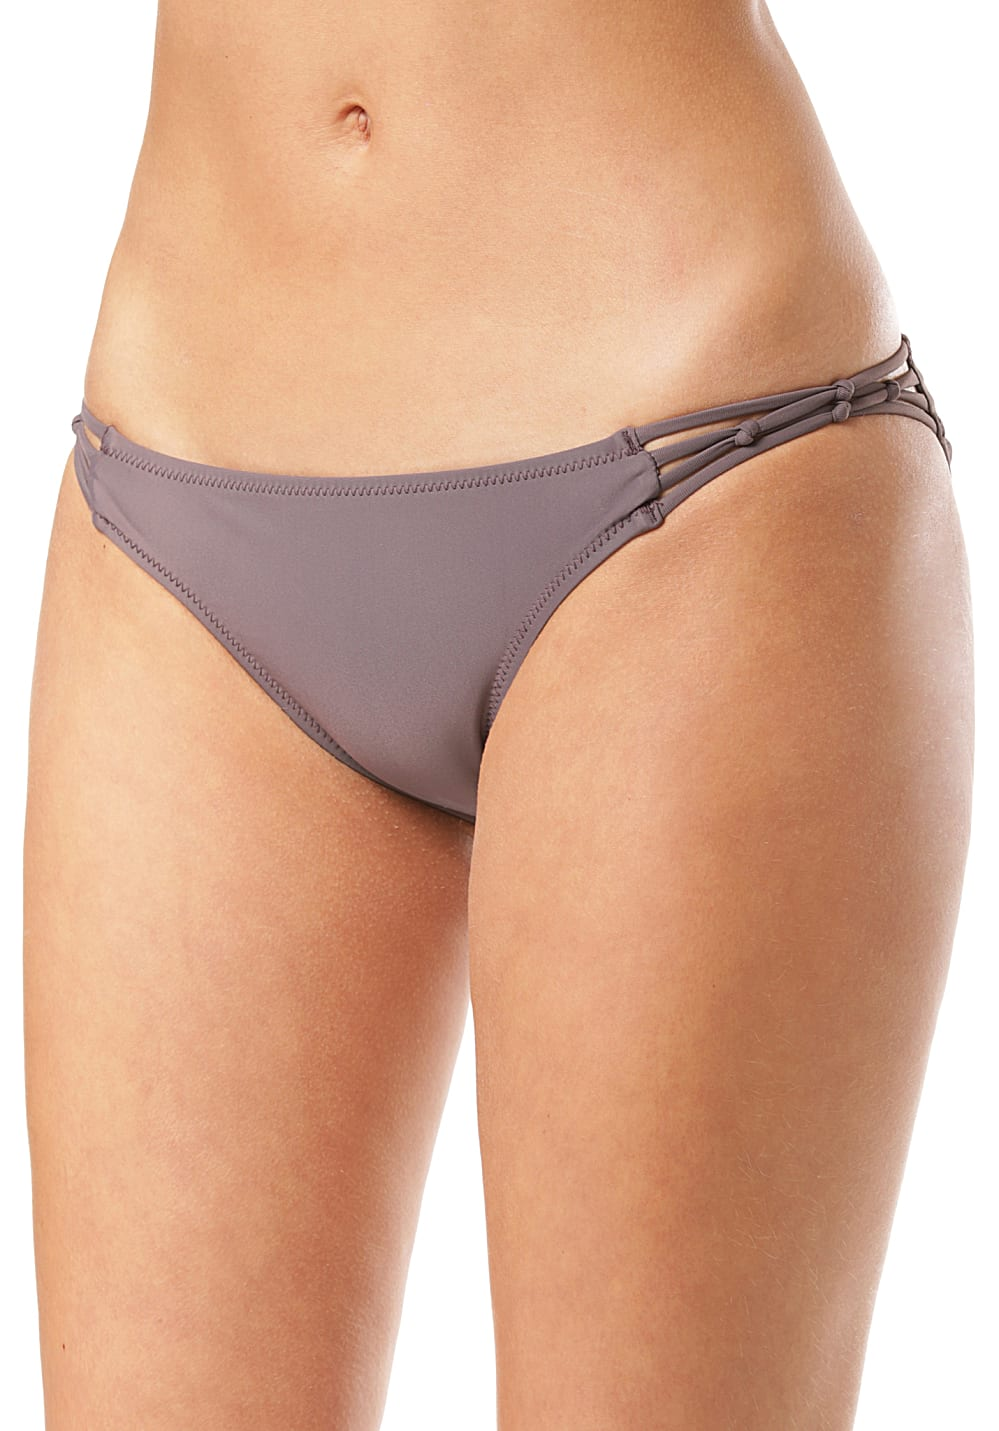 Bademode - Volcom Simply Solid Full Bikini Hose für Damen Grau  - Onlineshop Planet Sports